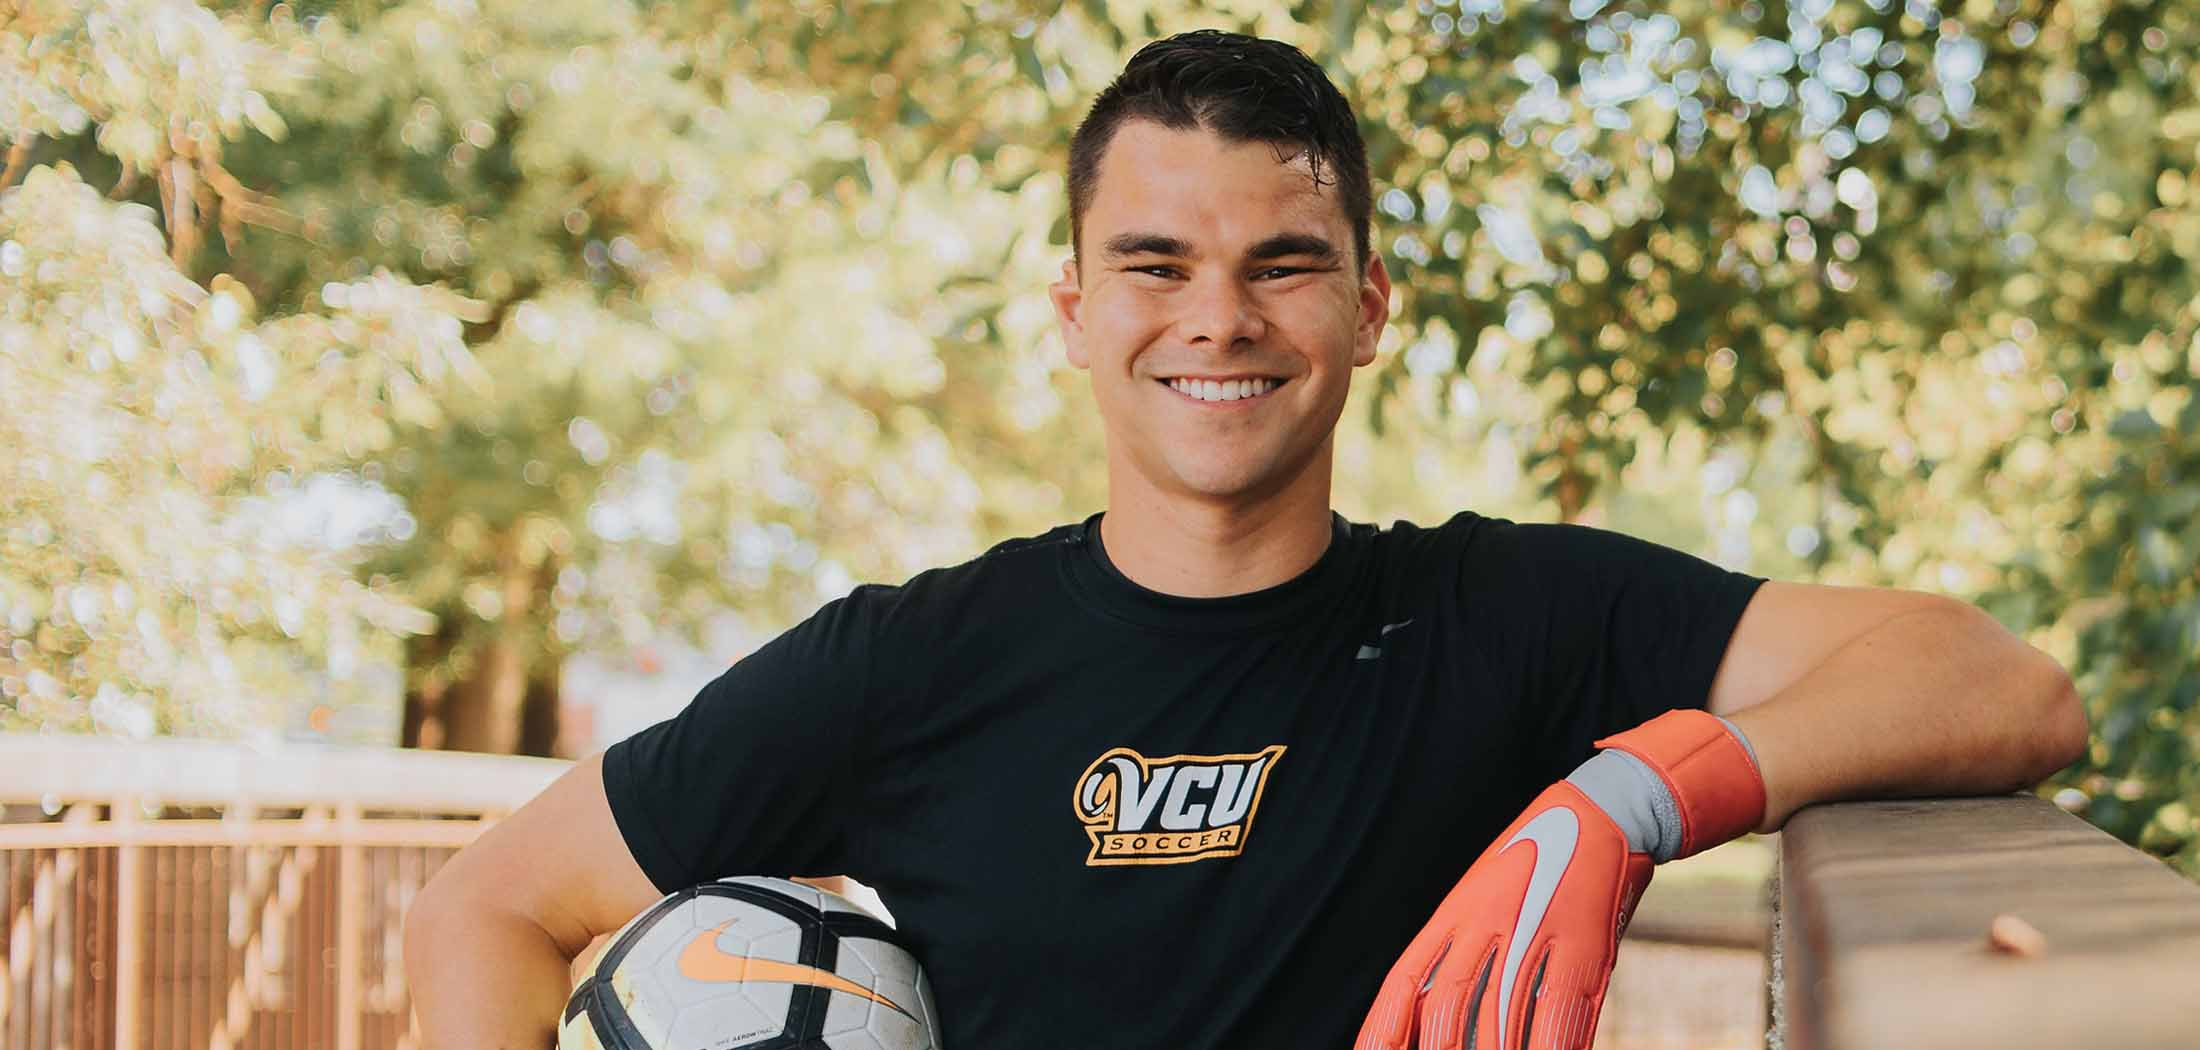 Mario wearing a VCU Soccer T-shirt and goalkeepr gloves. Holding a soccer ball at his side.